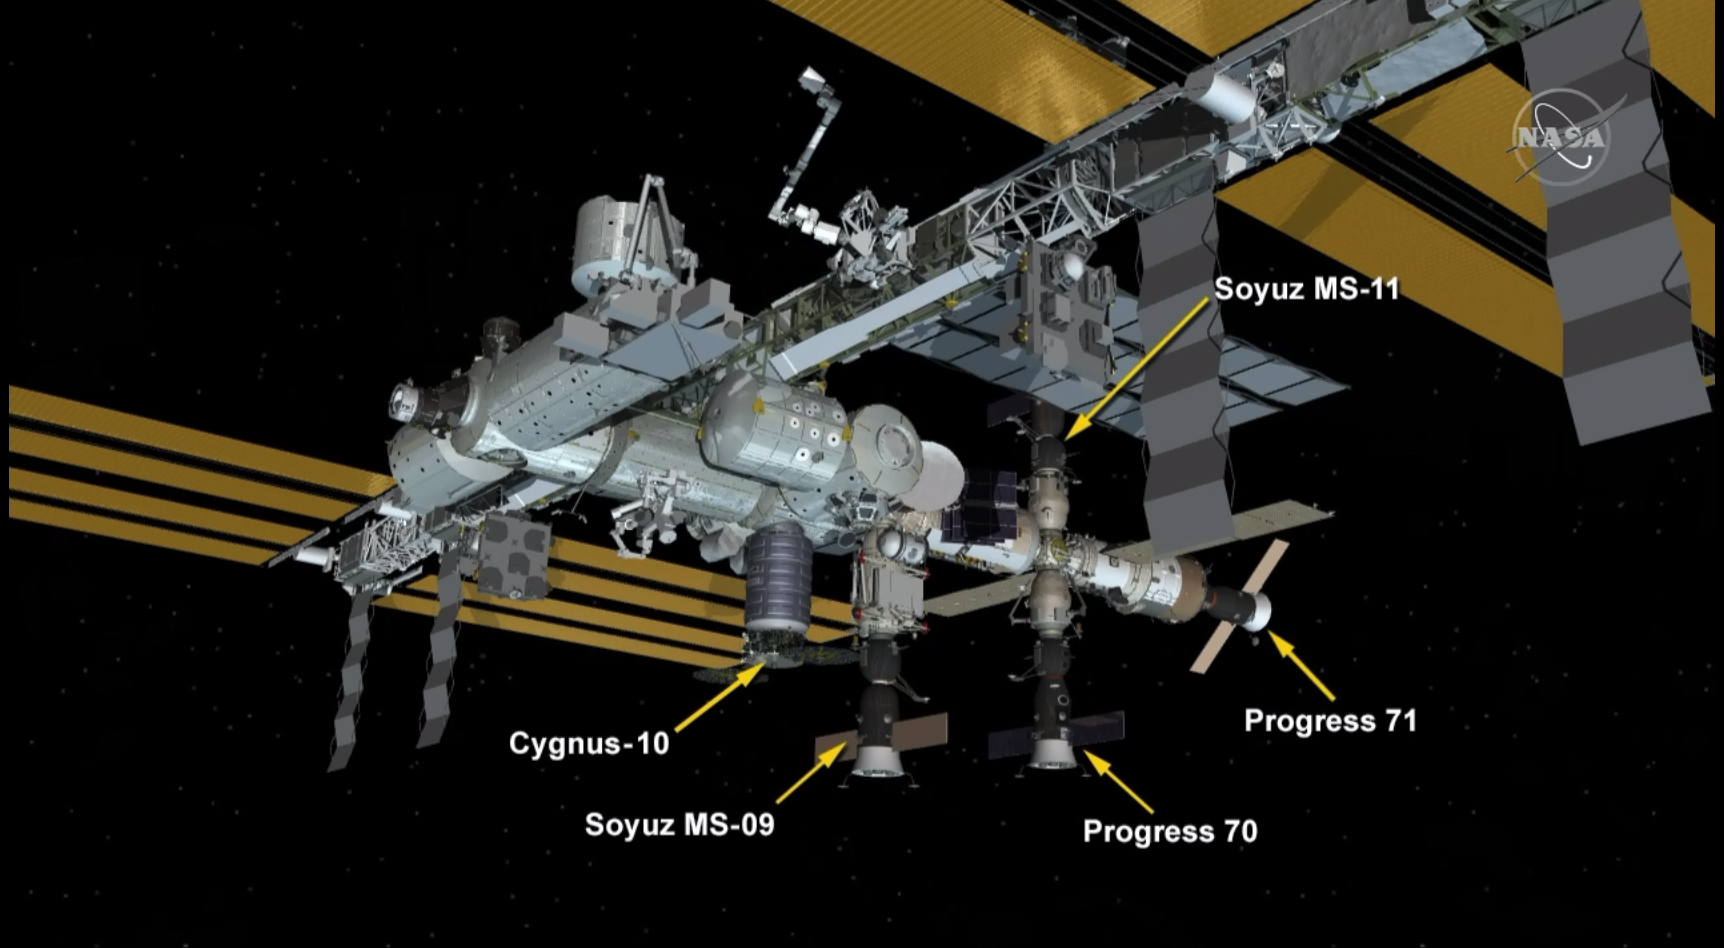 This diagram shows the location of the Soyuz MS-11 spacecraft docked to the International Space Station